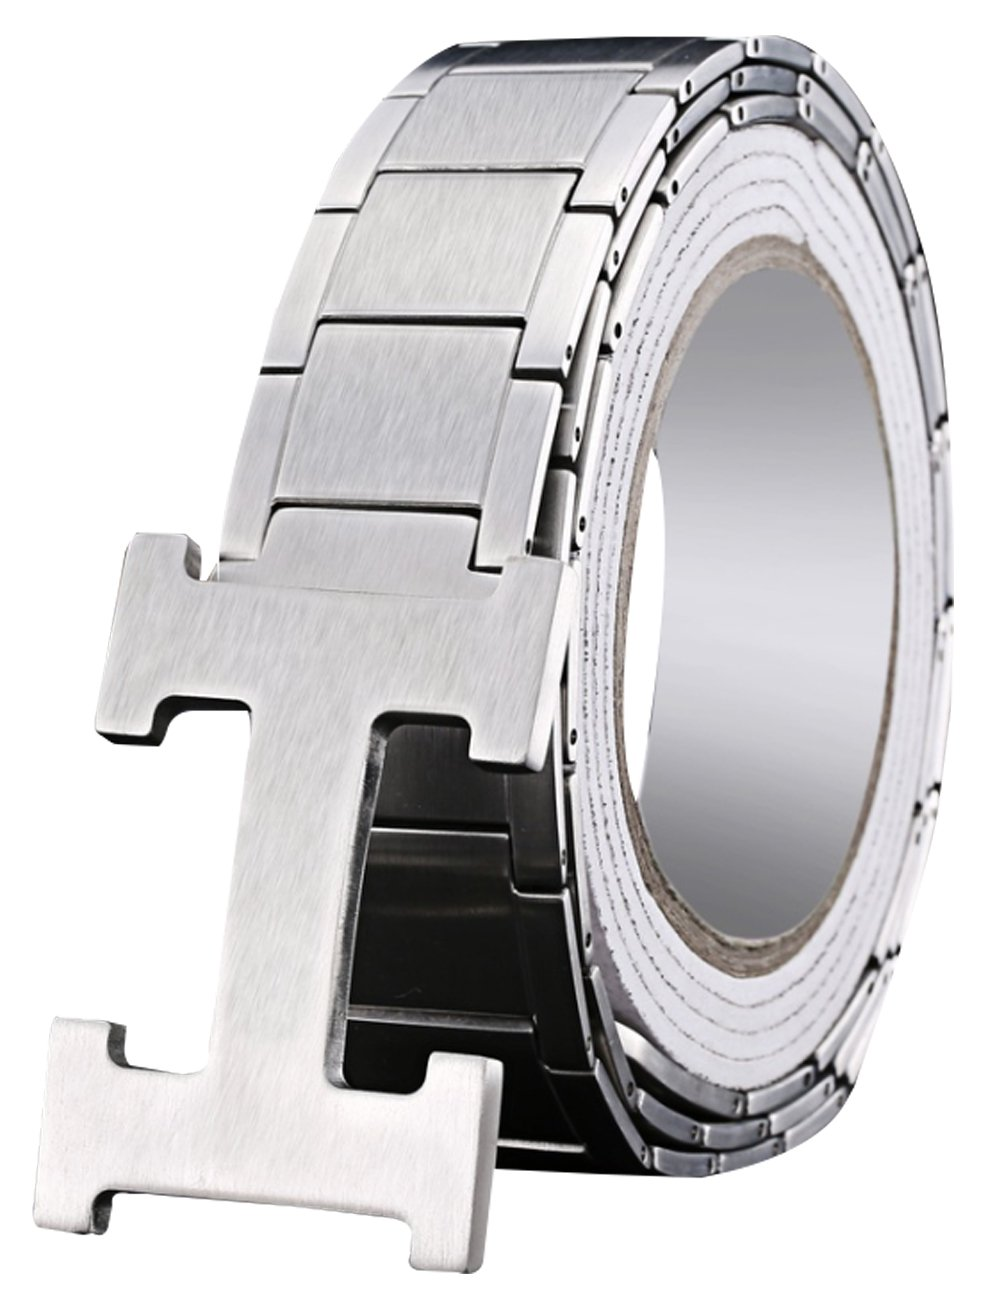 Menschwear Men's Stainless Steel Belt Slide Buckle Adjustable 32mm Silver 110cm